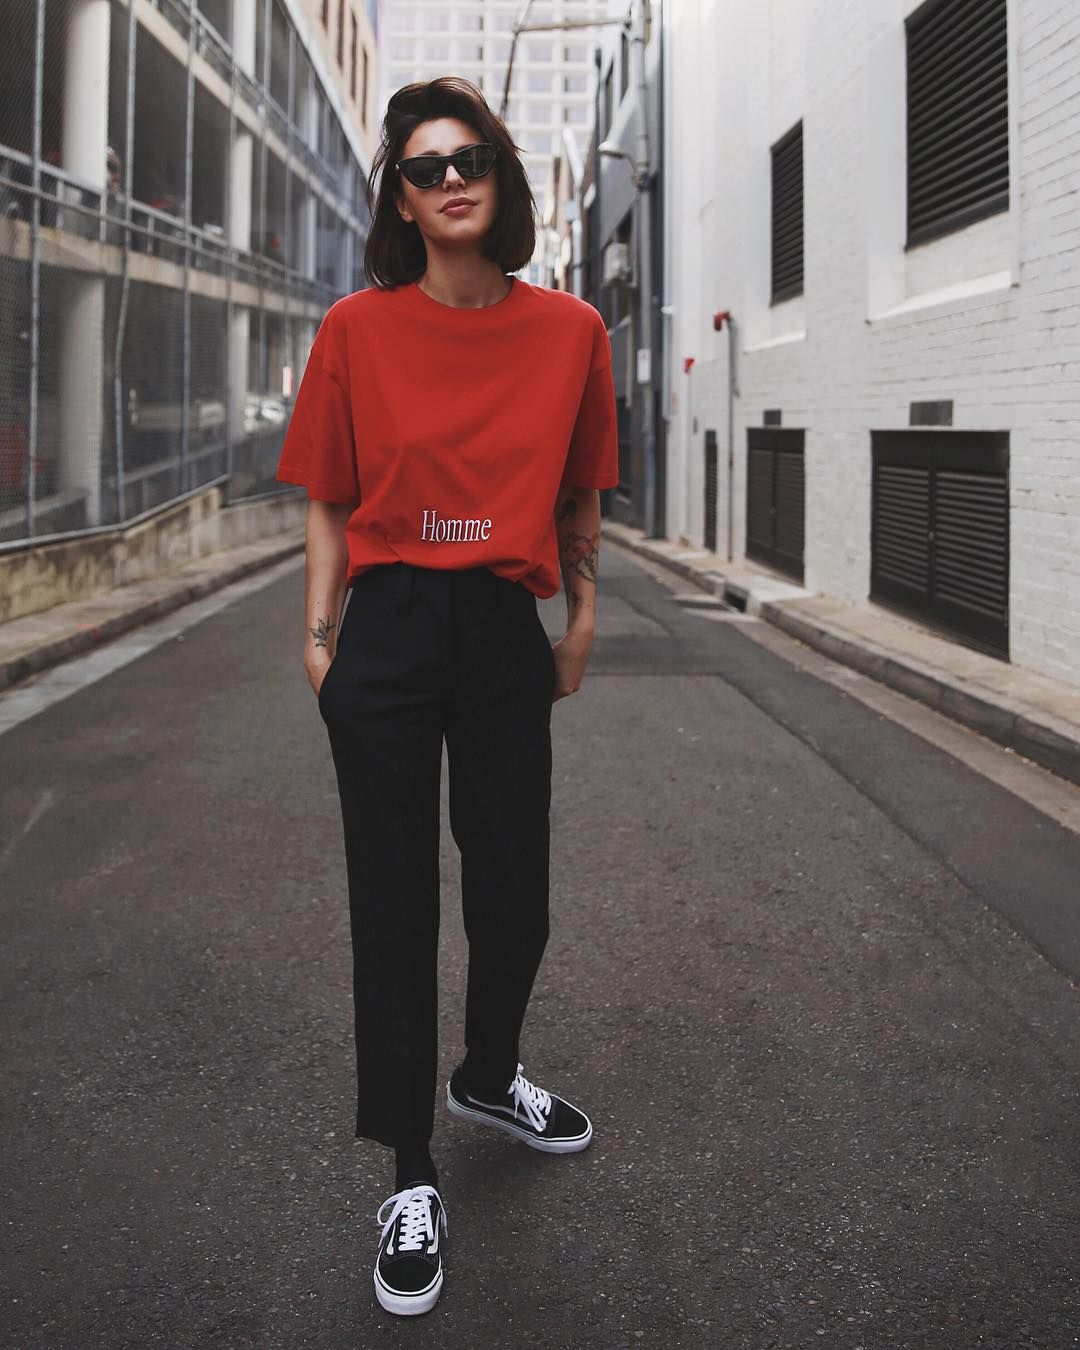 a3c734fe3ae Pin by Gia Duong on Sweater Weather ☁ | Pinterest | Fashion, Style and  Outfits